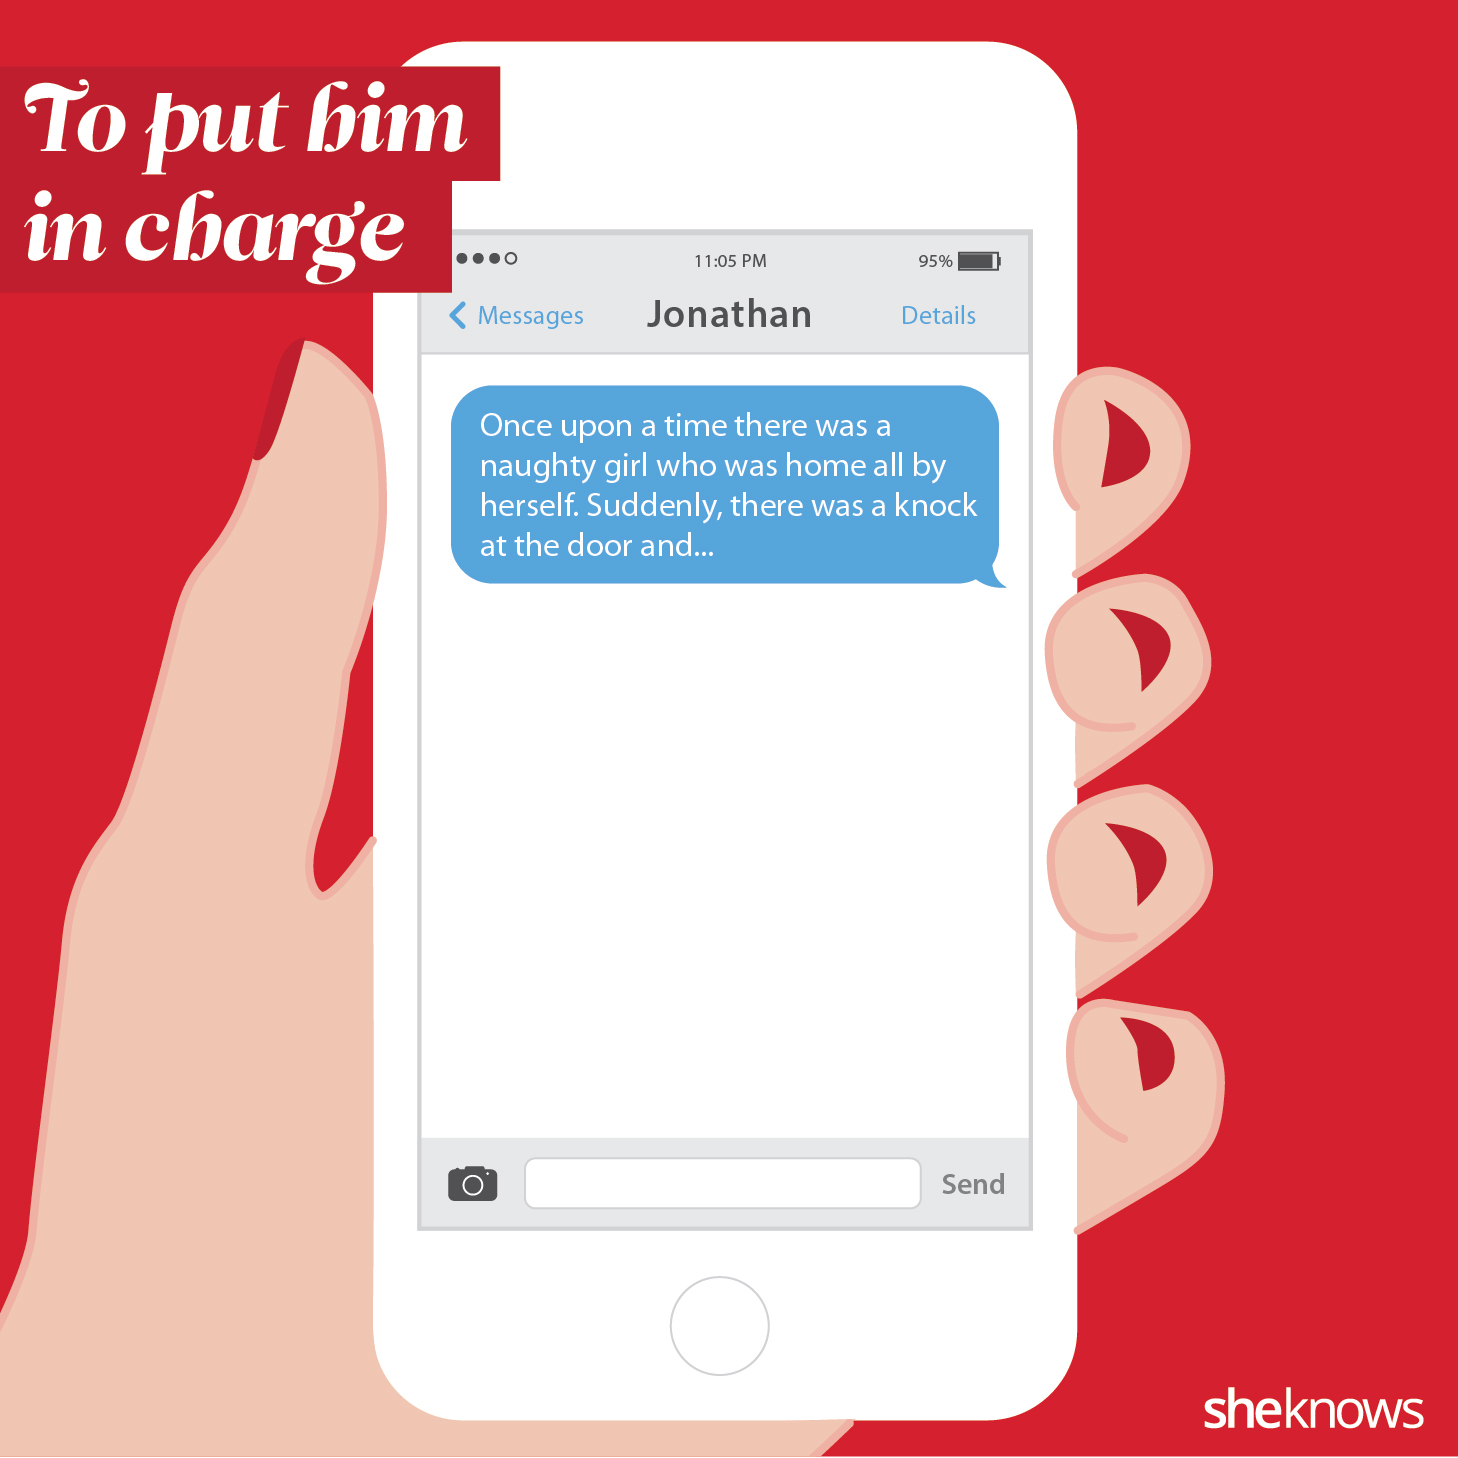 How to start phone sexting